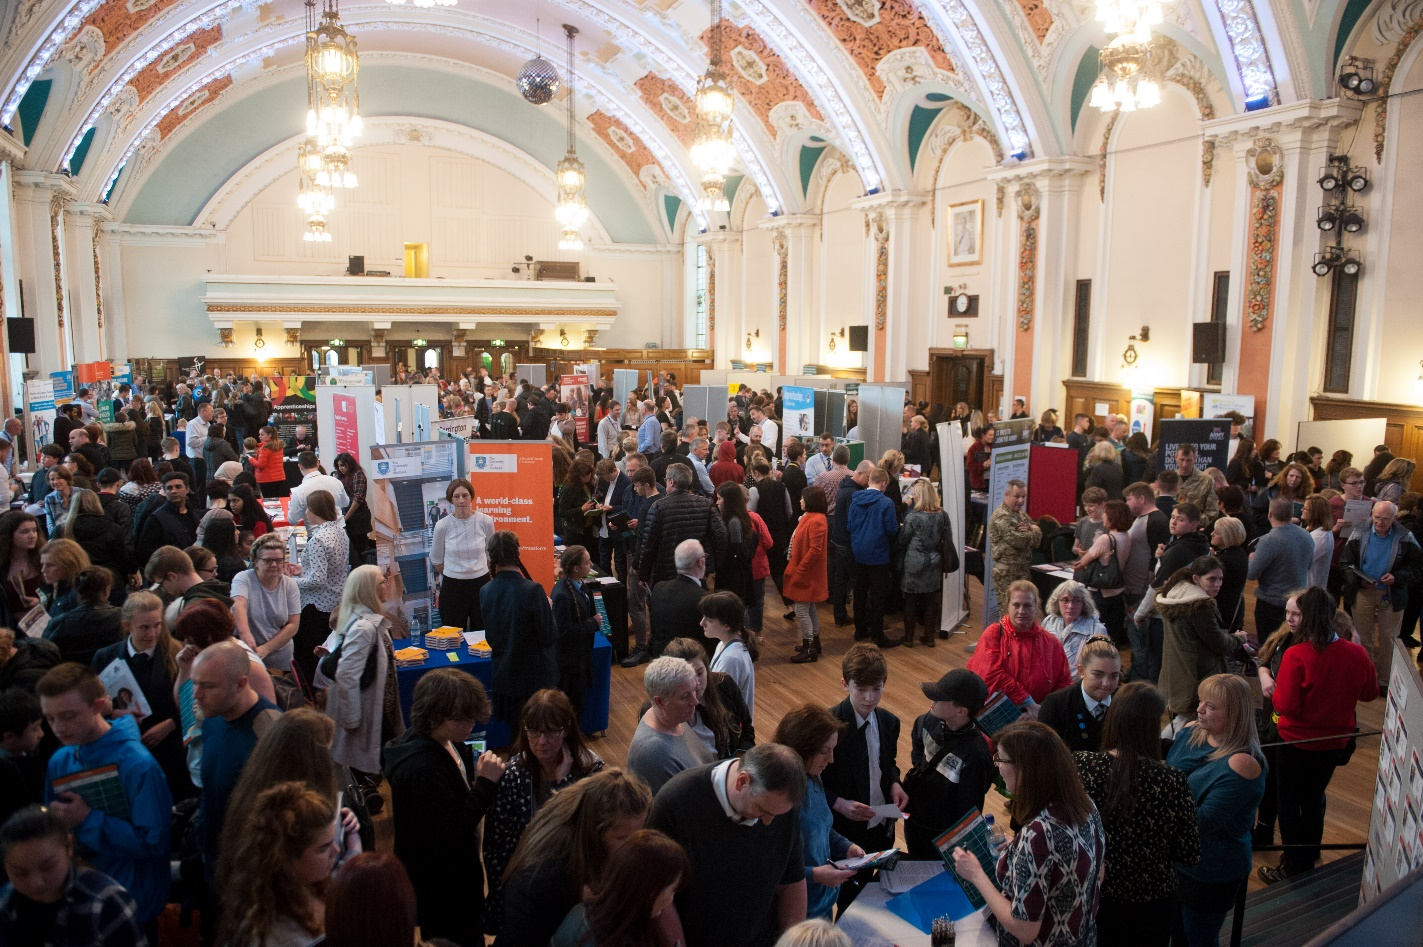 Post 16 options event to help parents and young people plan for their future